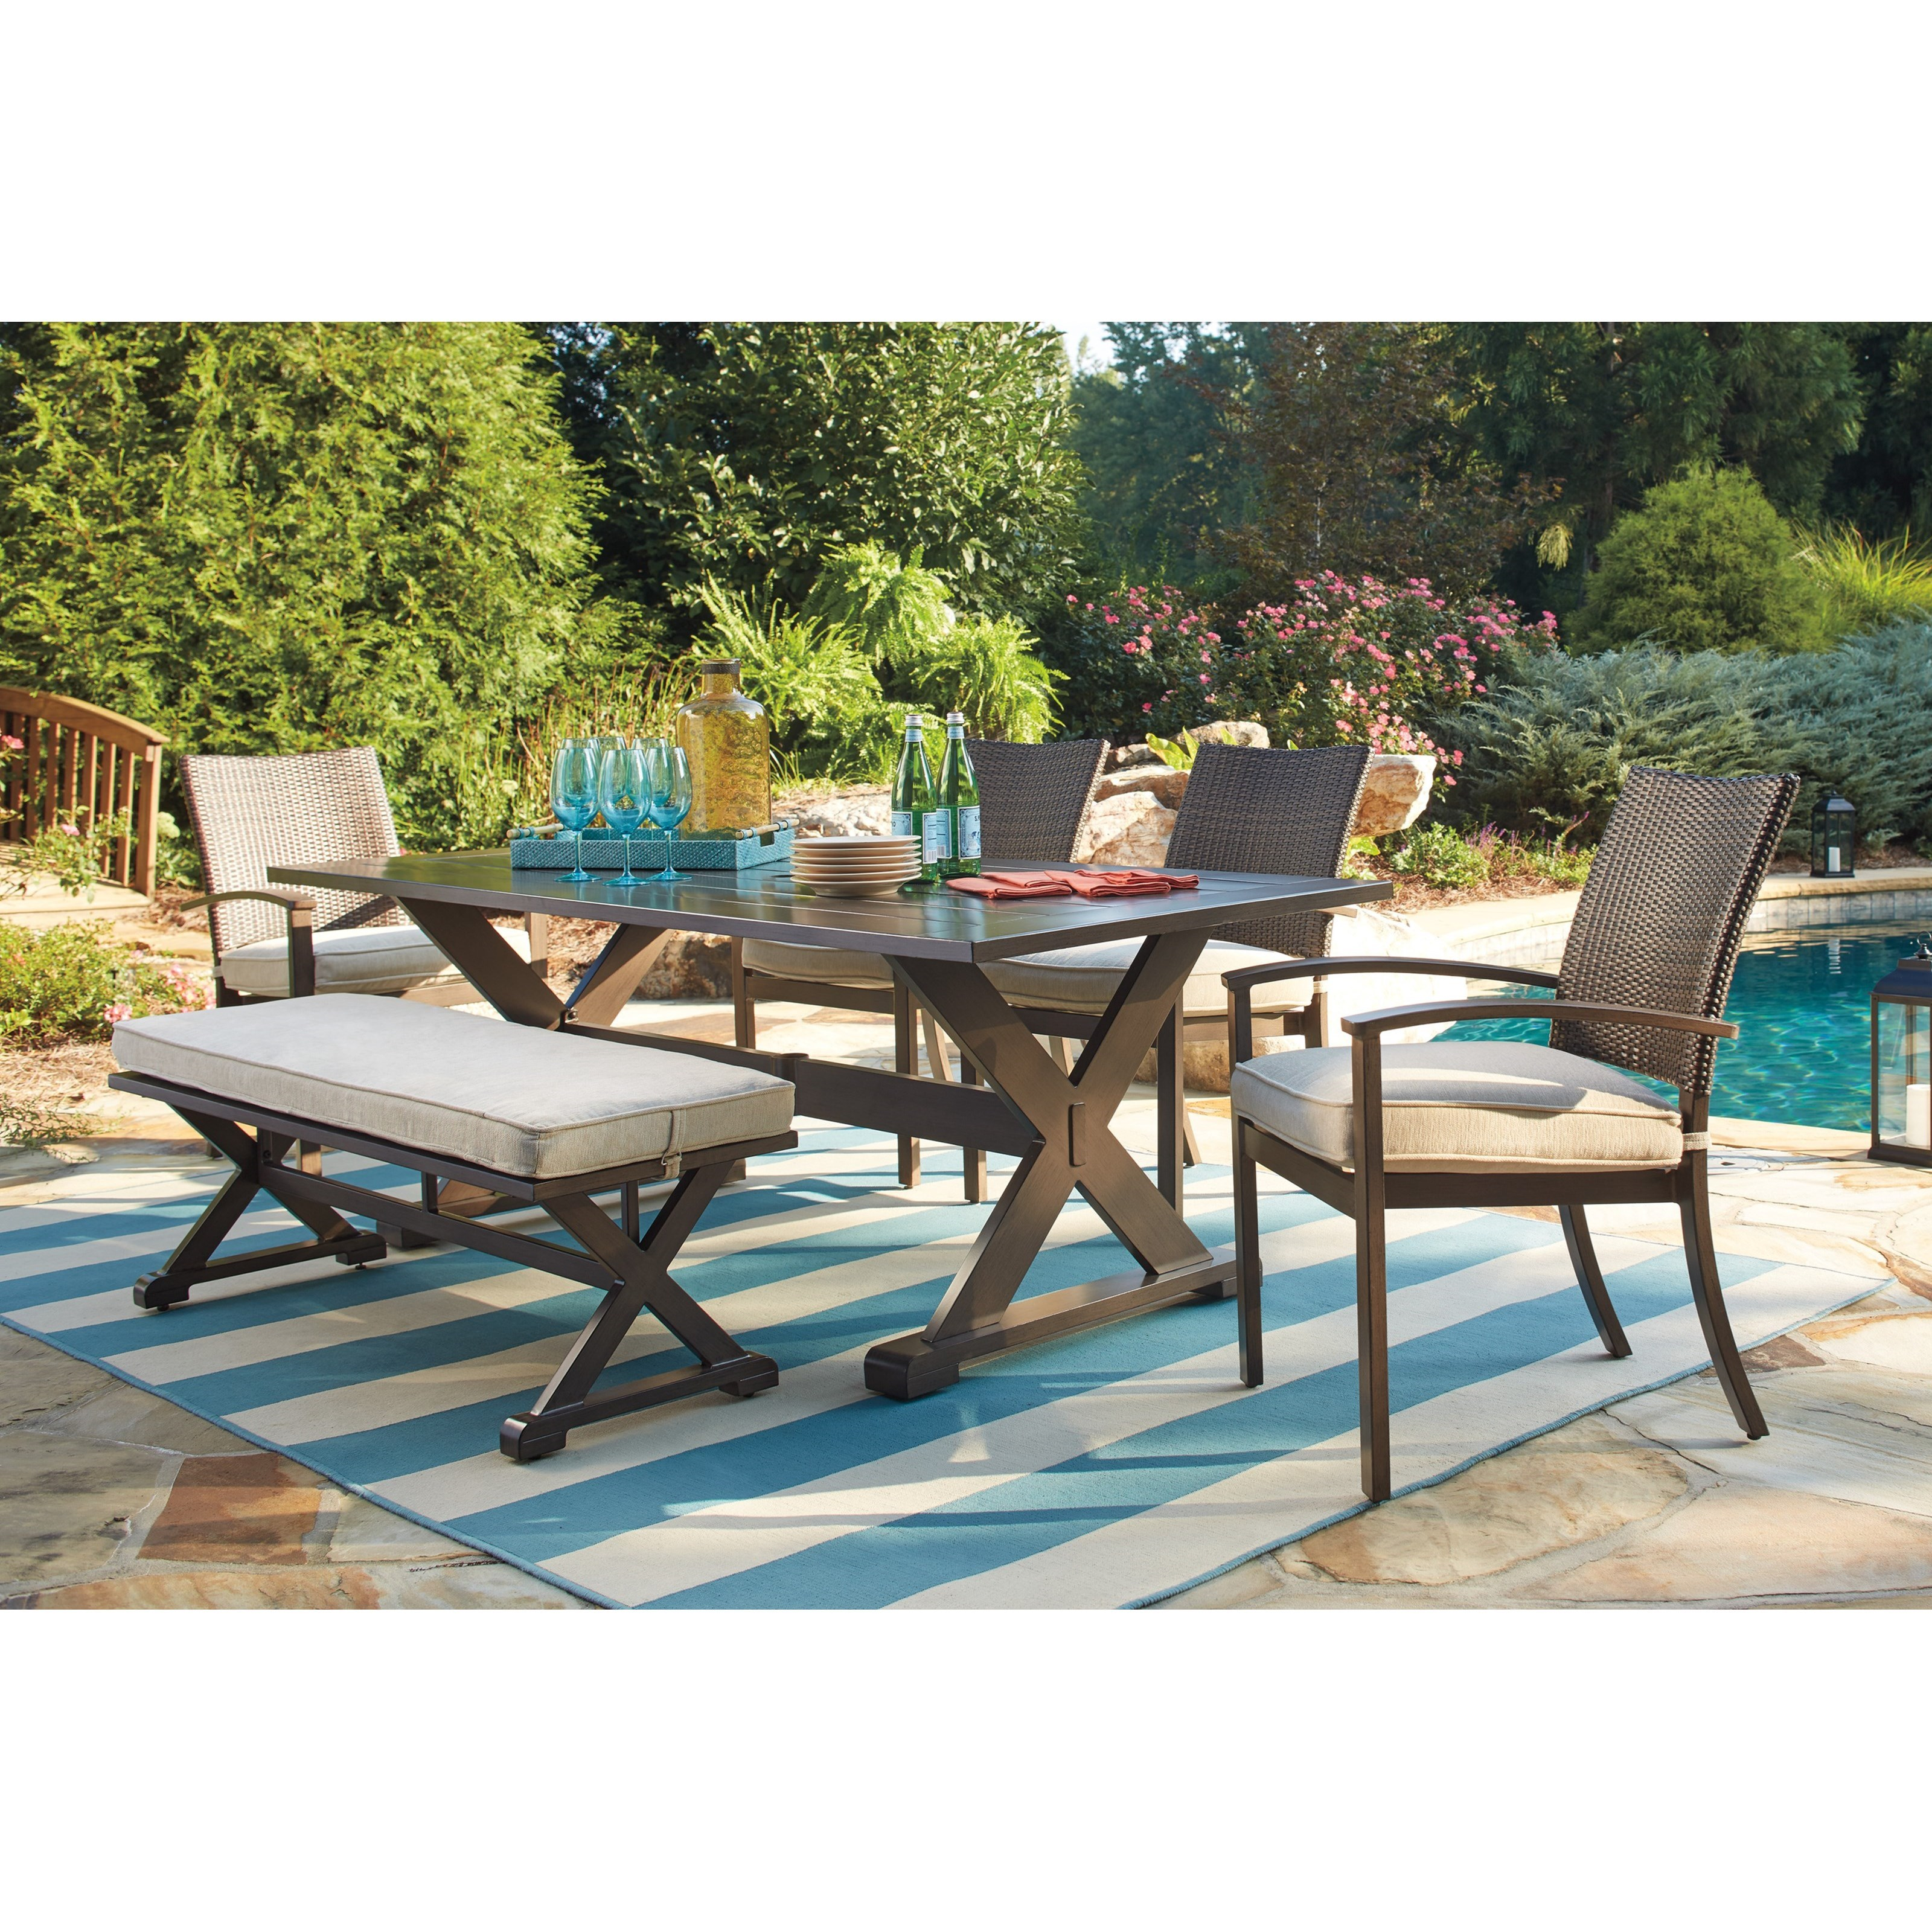 Ashley Signature Design Moresdale Outdoor Dining Set with Bench Dunk &